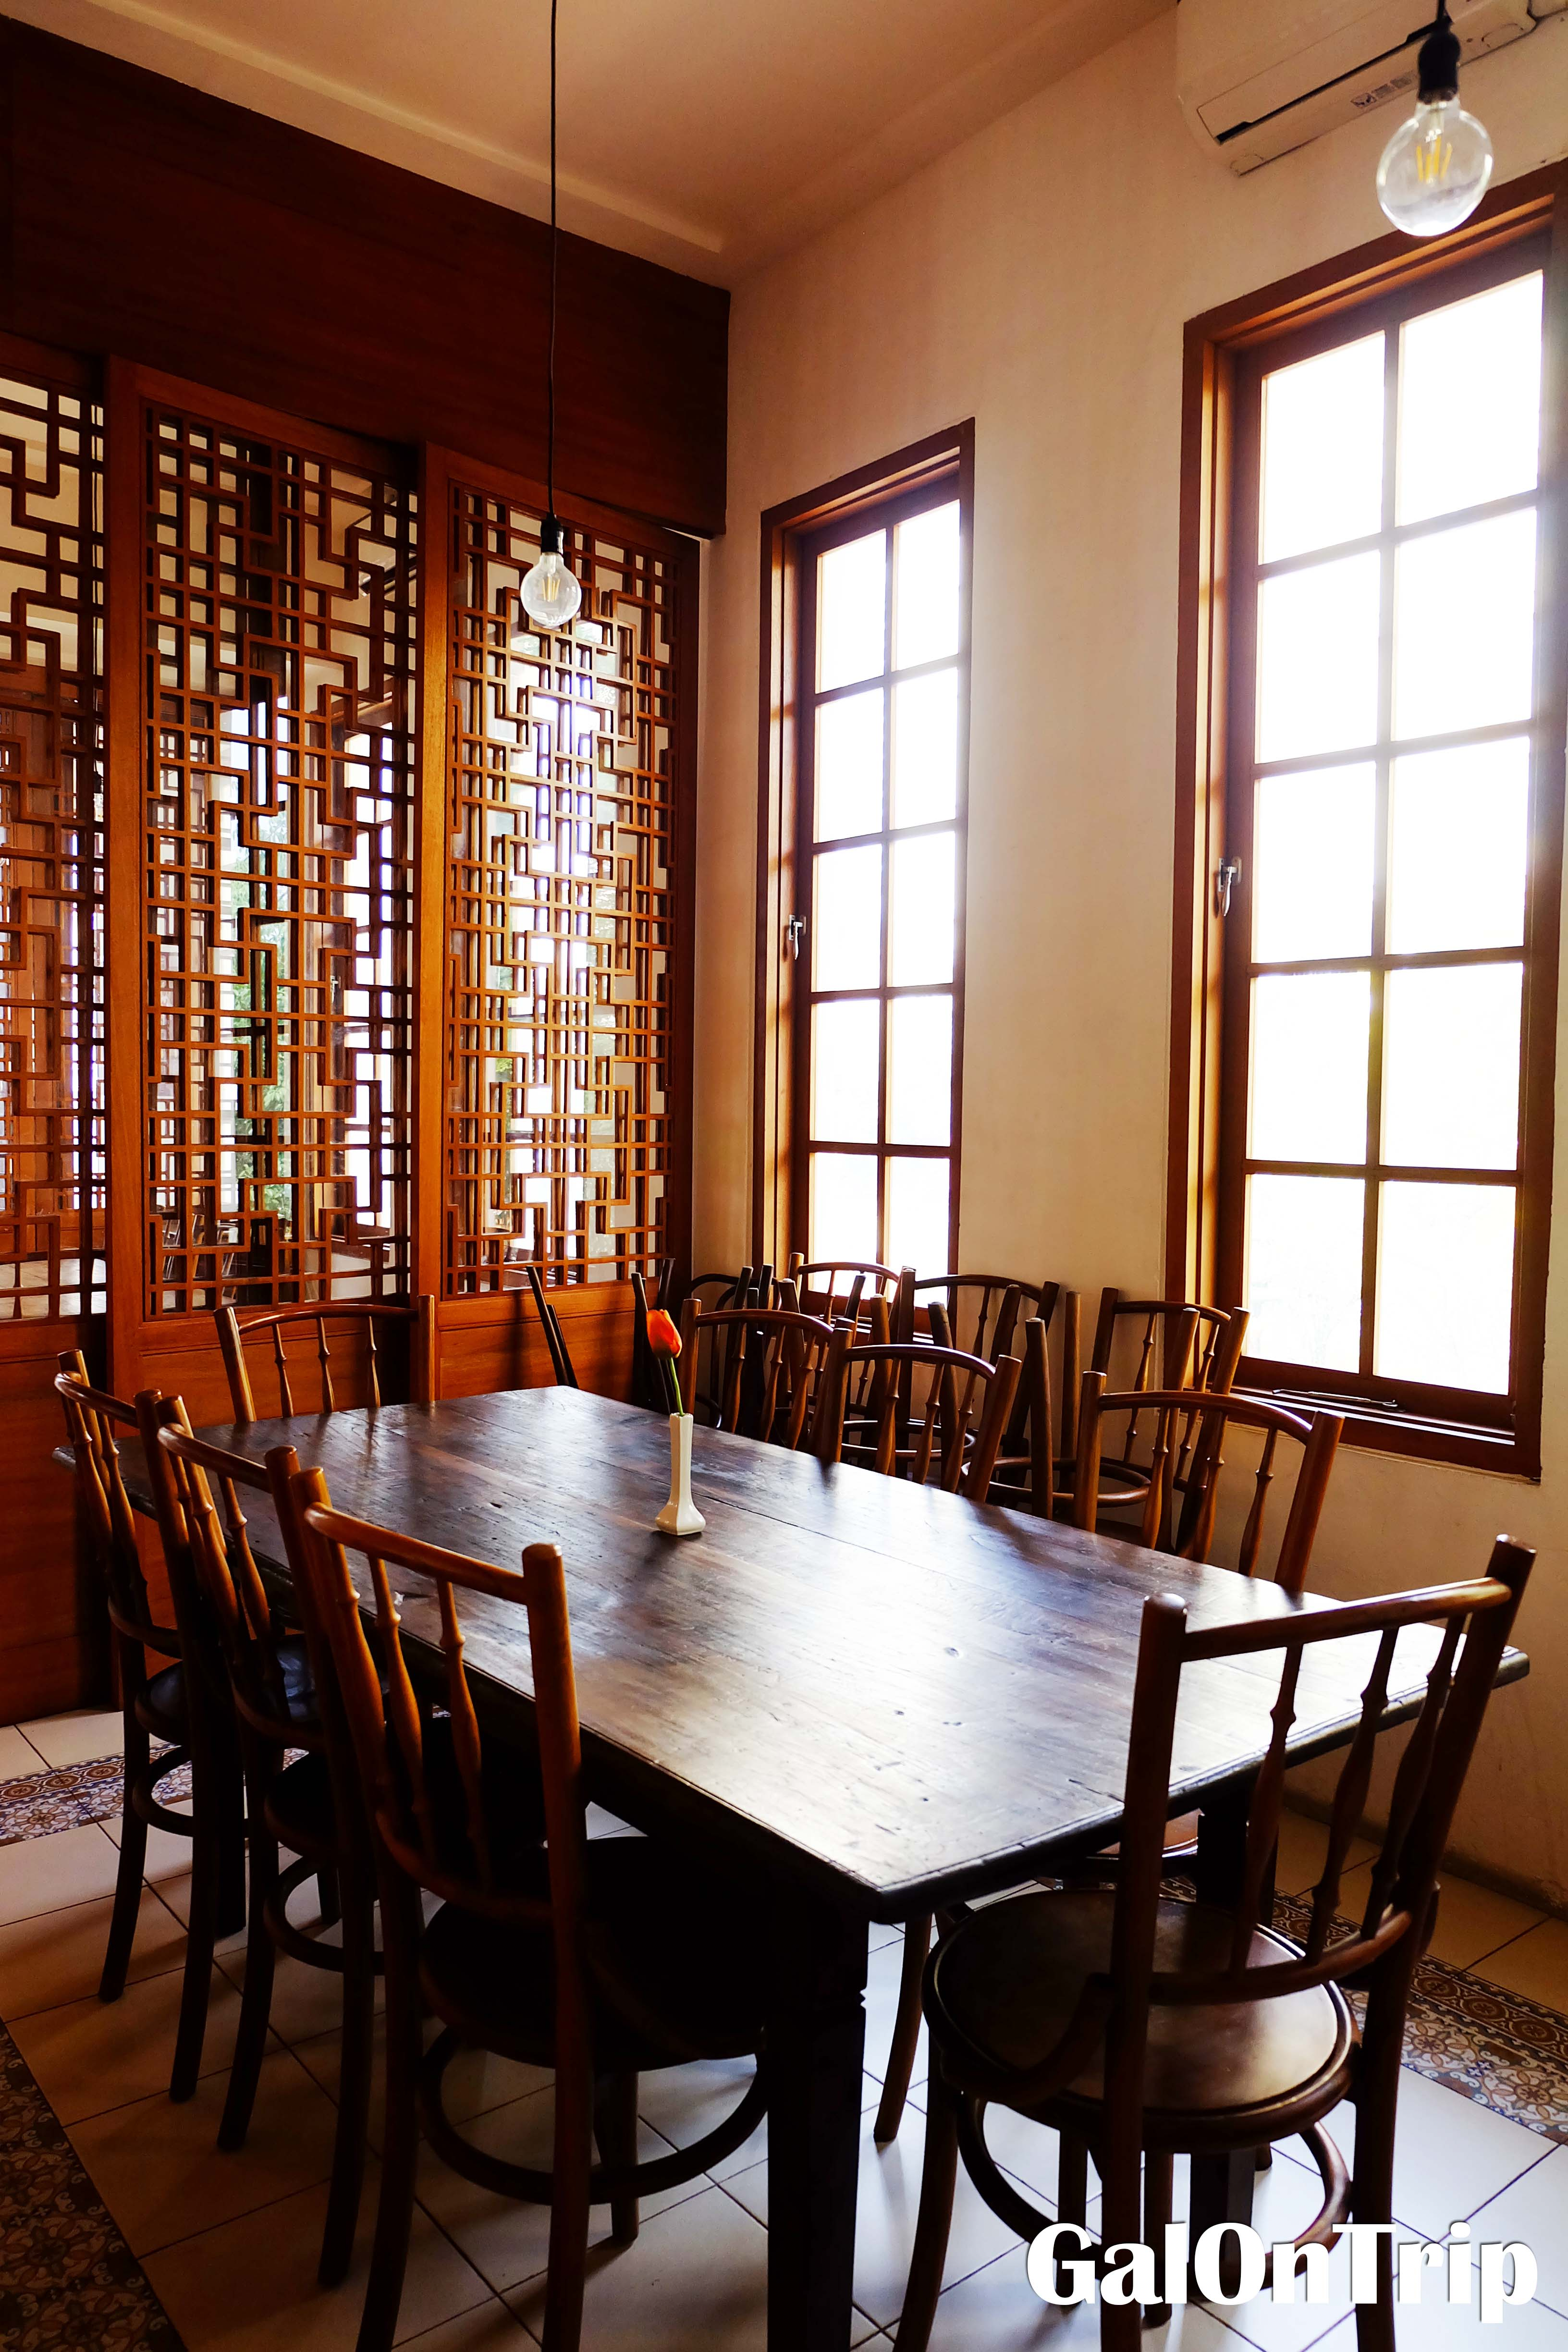 private seating for meetings